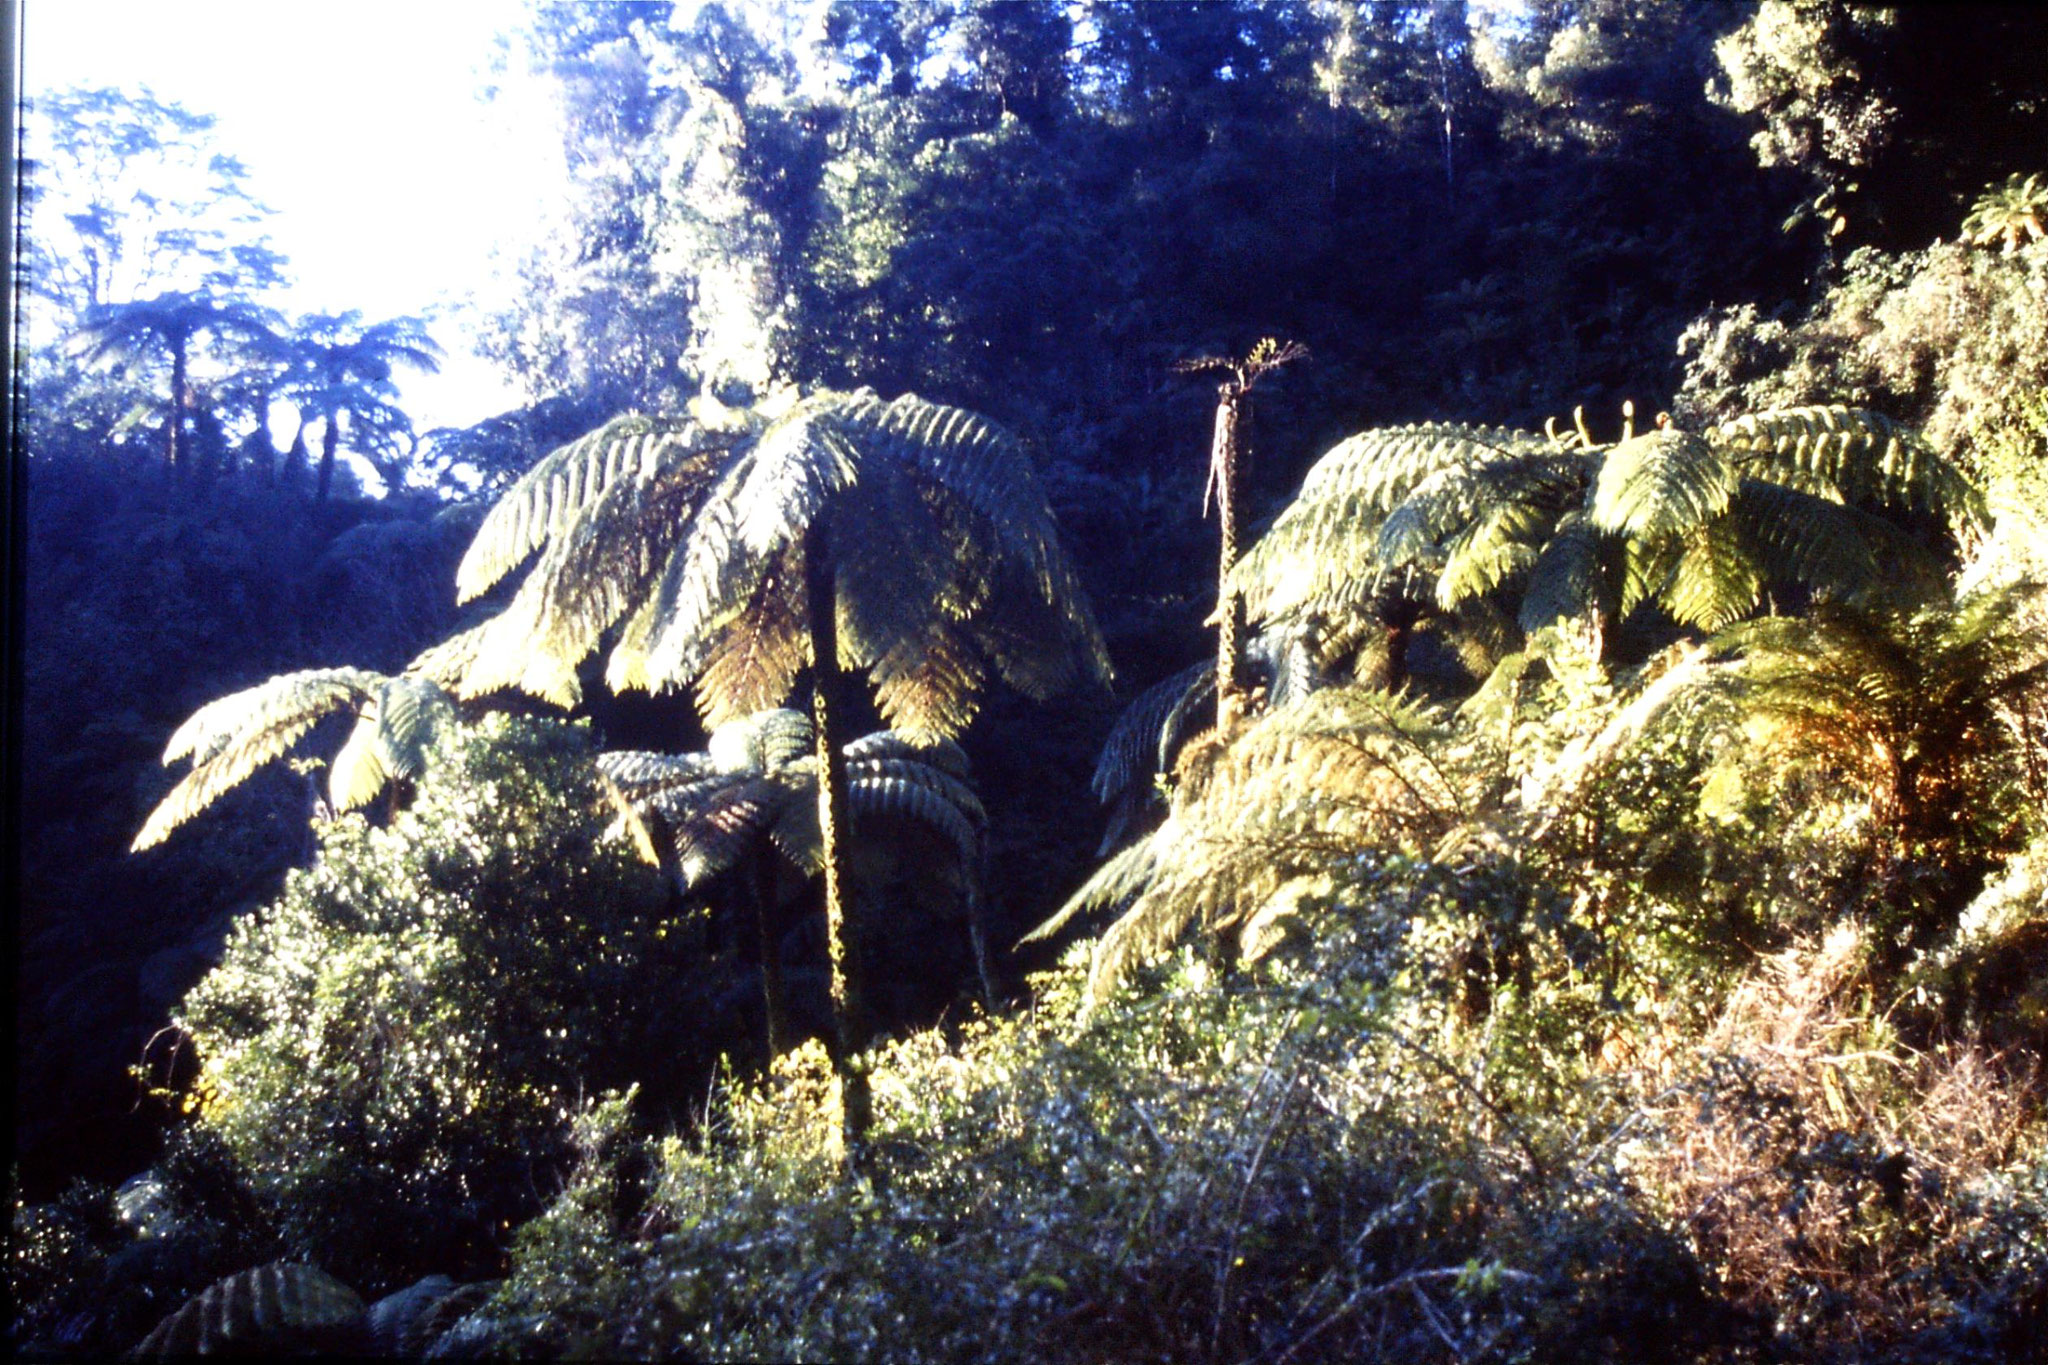 28/8/1990: 23: tree ferns near Whangamomona Saddle